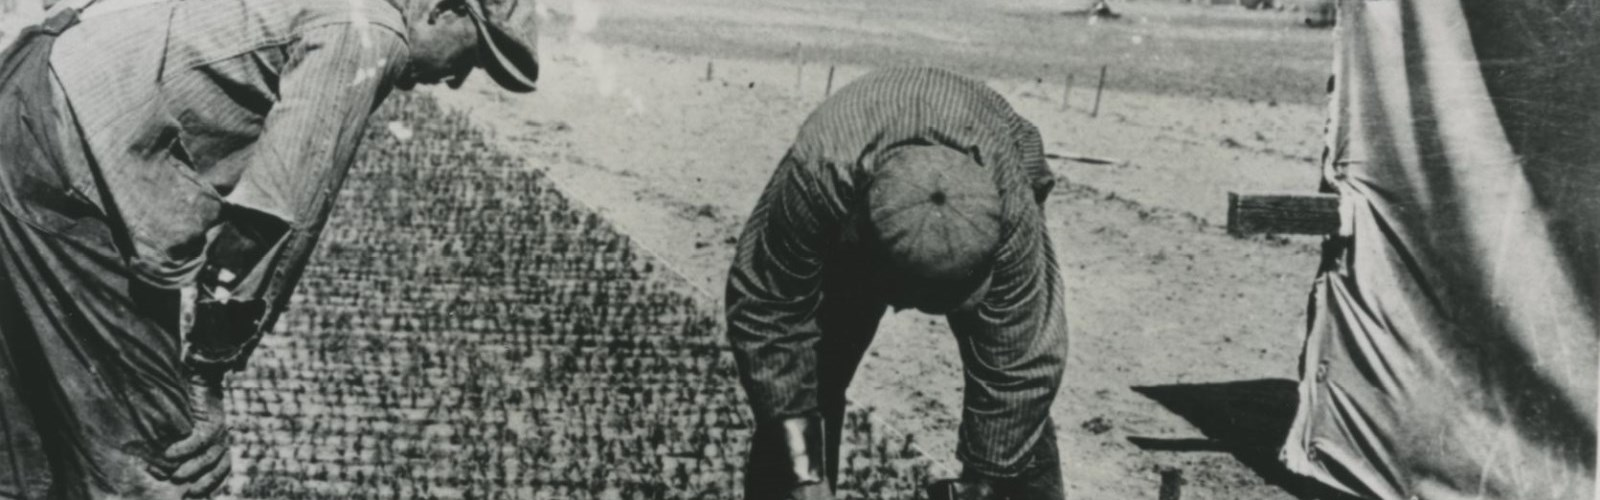 Old photo of two men tending to farm field